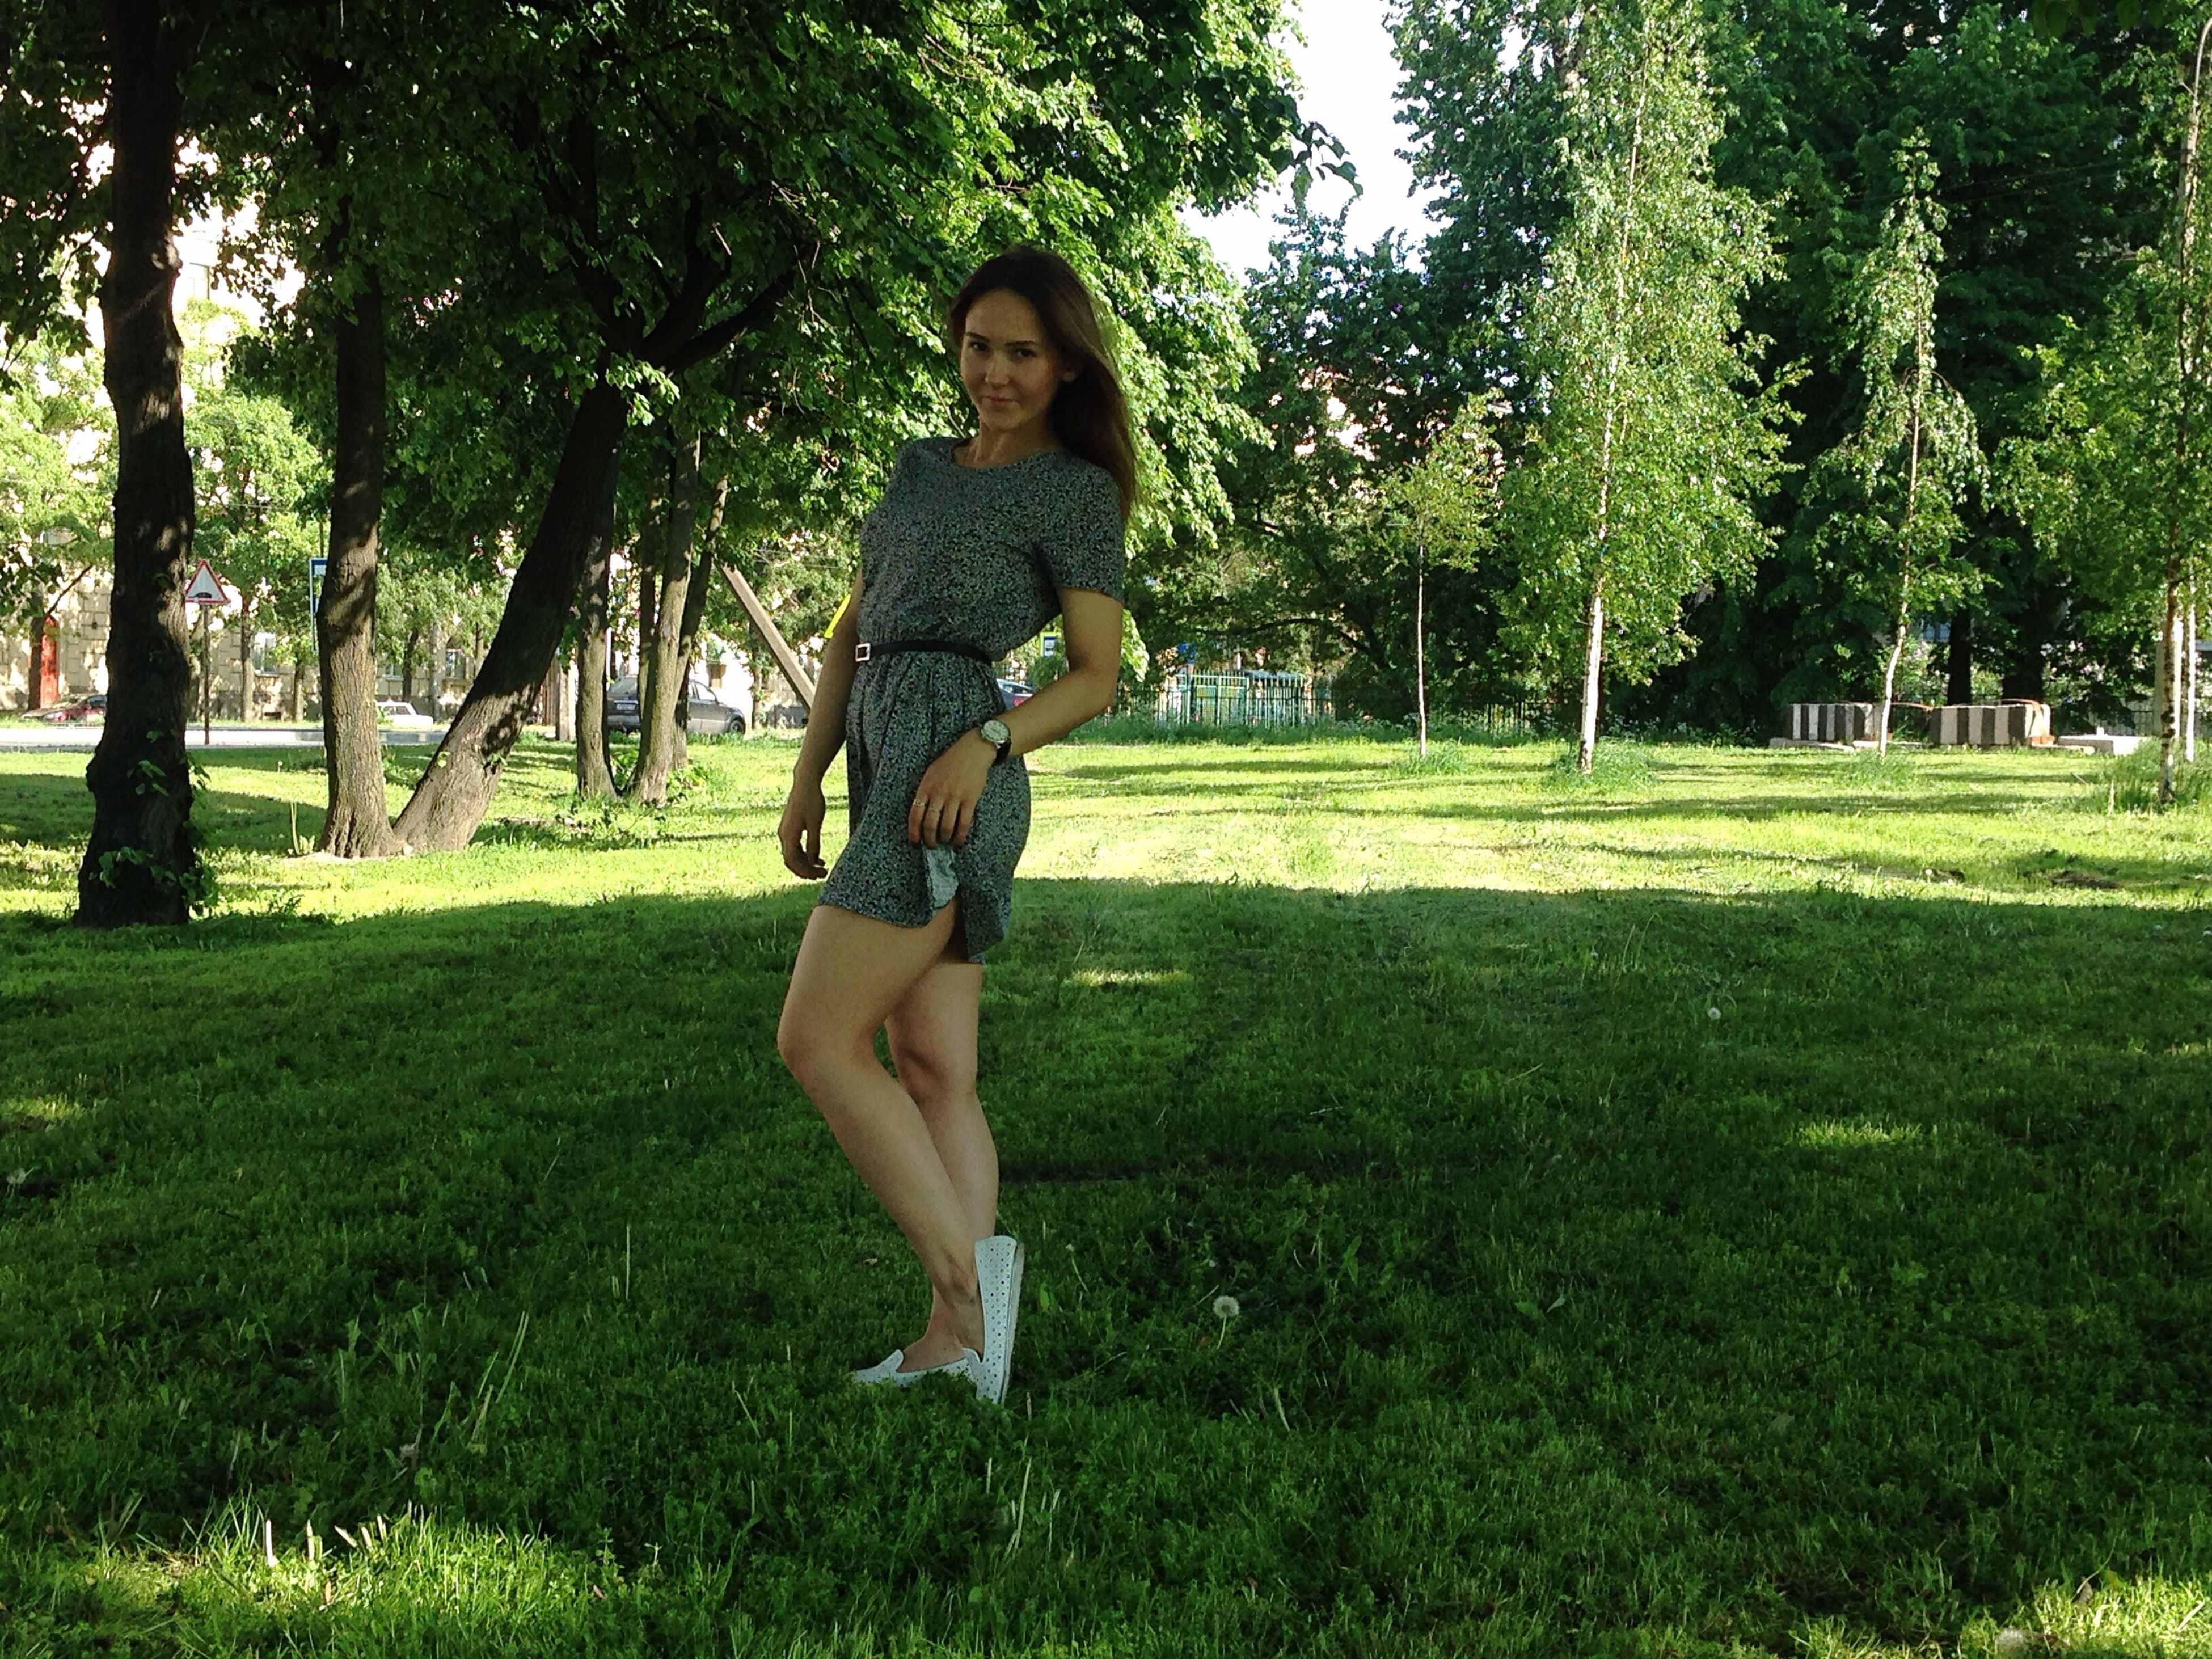 grass, tree, lifestyles, full length, person, leisure activity, young adult, casual clothing, green color, young women, field, grassy, park - man made space, growth, standing, front view, carefree, enjoyment